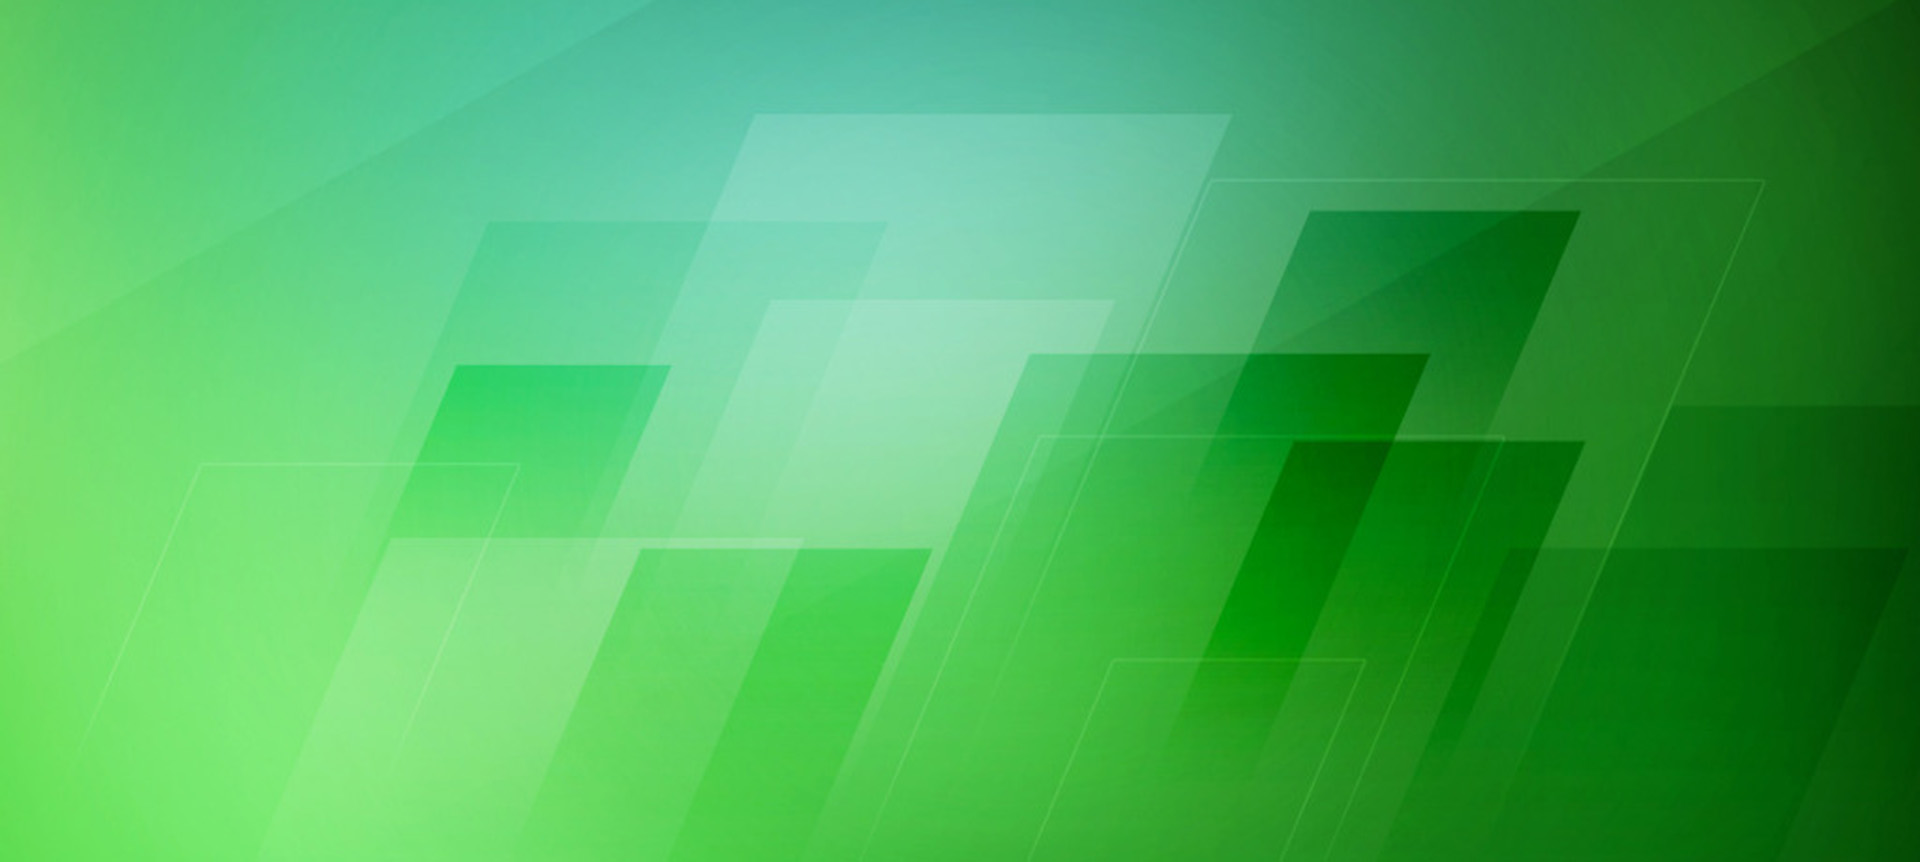 green flat  green  flat  poster background image for free download